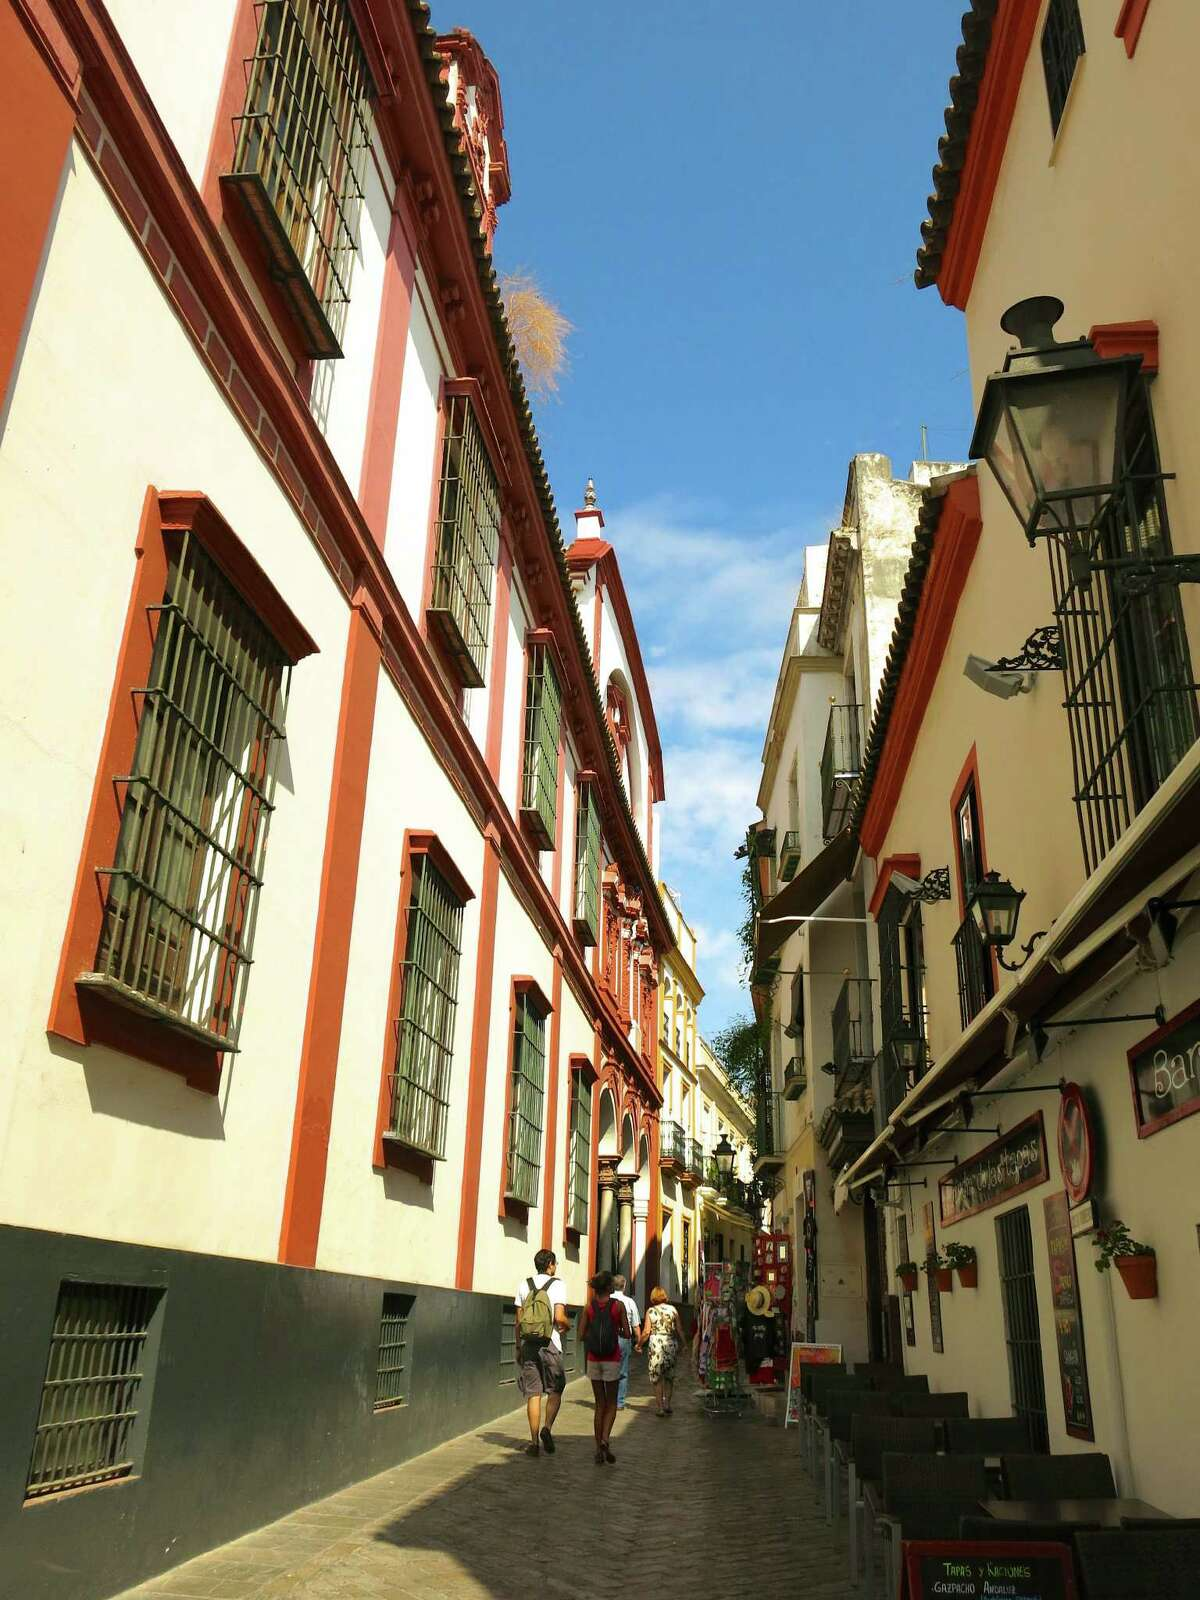 Guernsey is a stop during Crystal Cruises' 10-day European Embrace tour. Passengers explore Seville's former Jewish quarter during the Classic Seville excursion.